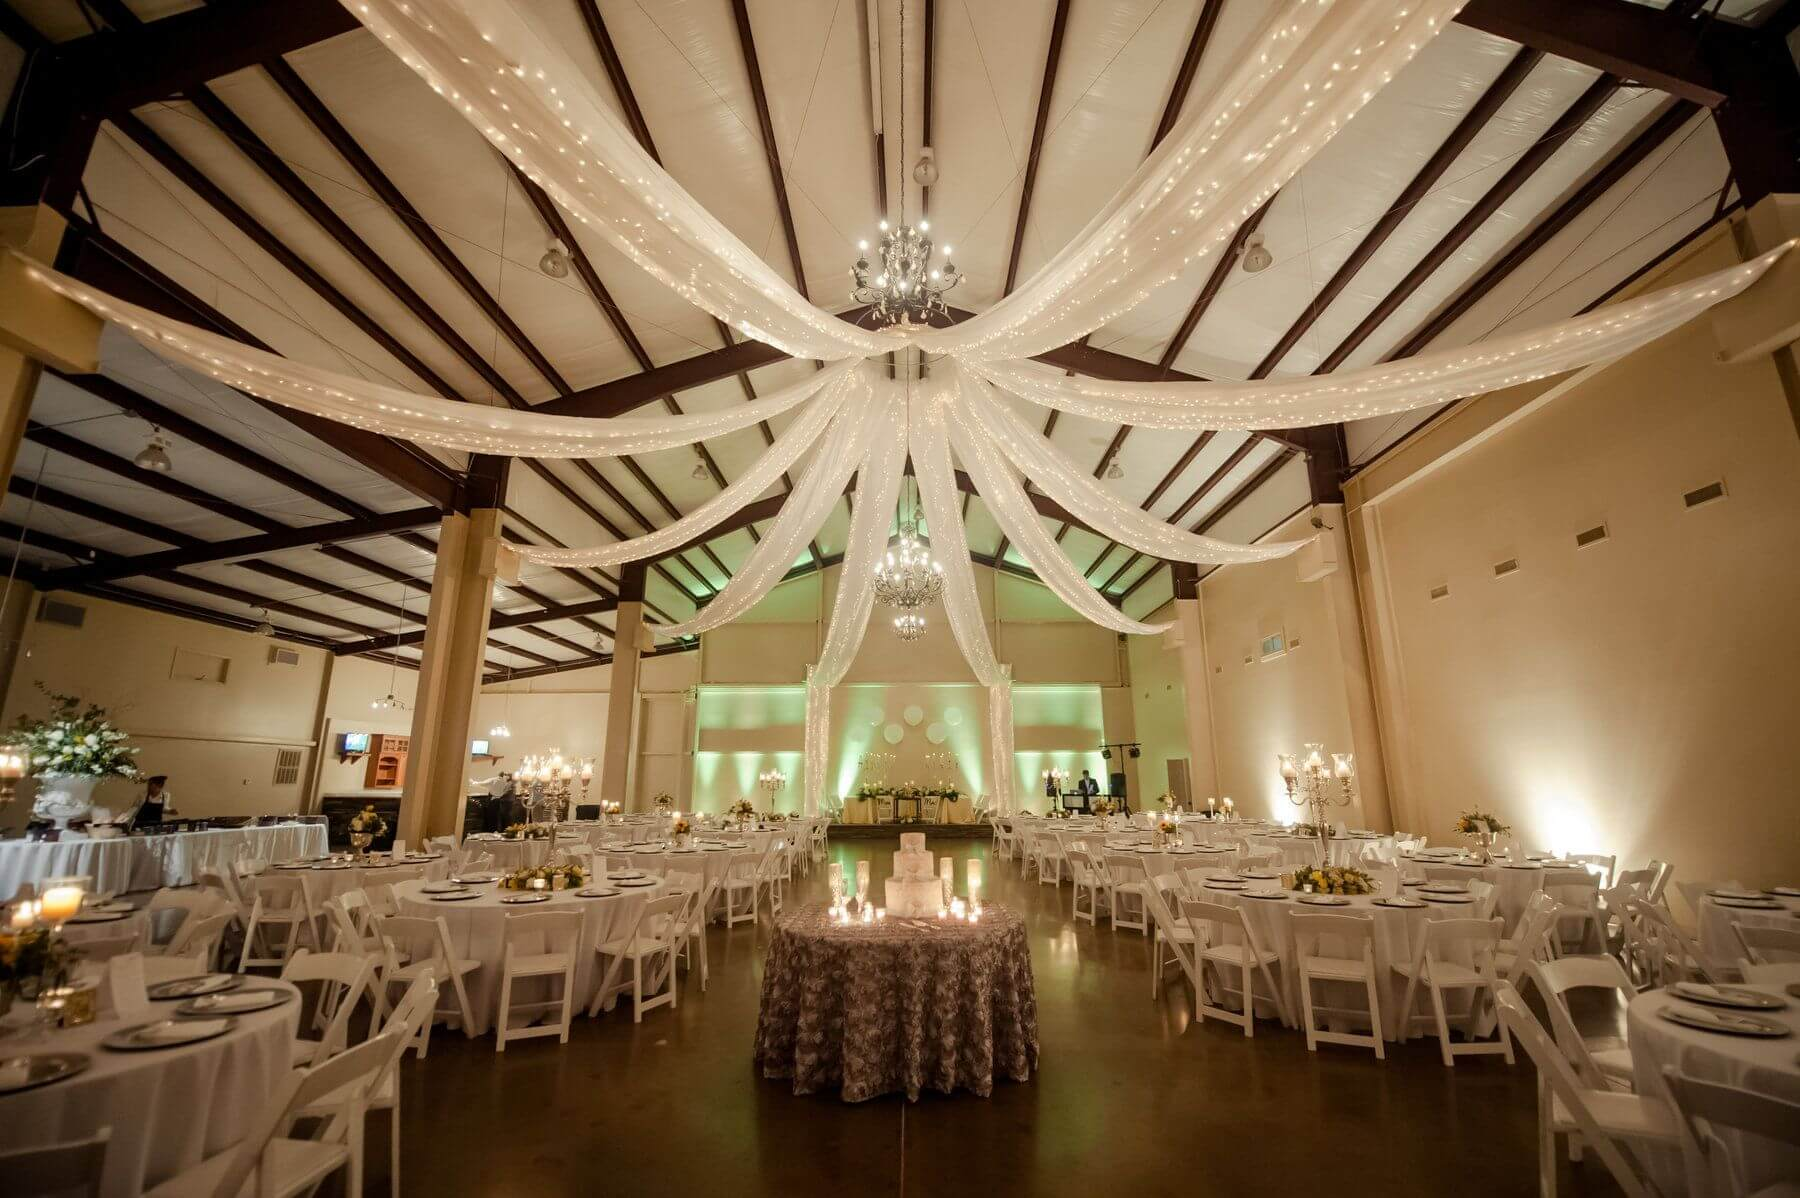 """Rustic elegance makes for the perfect day at <a href=""""http://www.windwoodweddings.com/"""" target=""""_blank"""" rel=""""noopener noreferrer"""">Windwood Equestrian</a>. Image: <a href=""""https://www.borrowedandblue.com/birmingham/wedding-venues/farms-barns/windwood-equestrian"""" target=""""_blank"""" rel=""""noopener noreferrer"""">Borrowed and Blue</a>"""